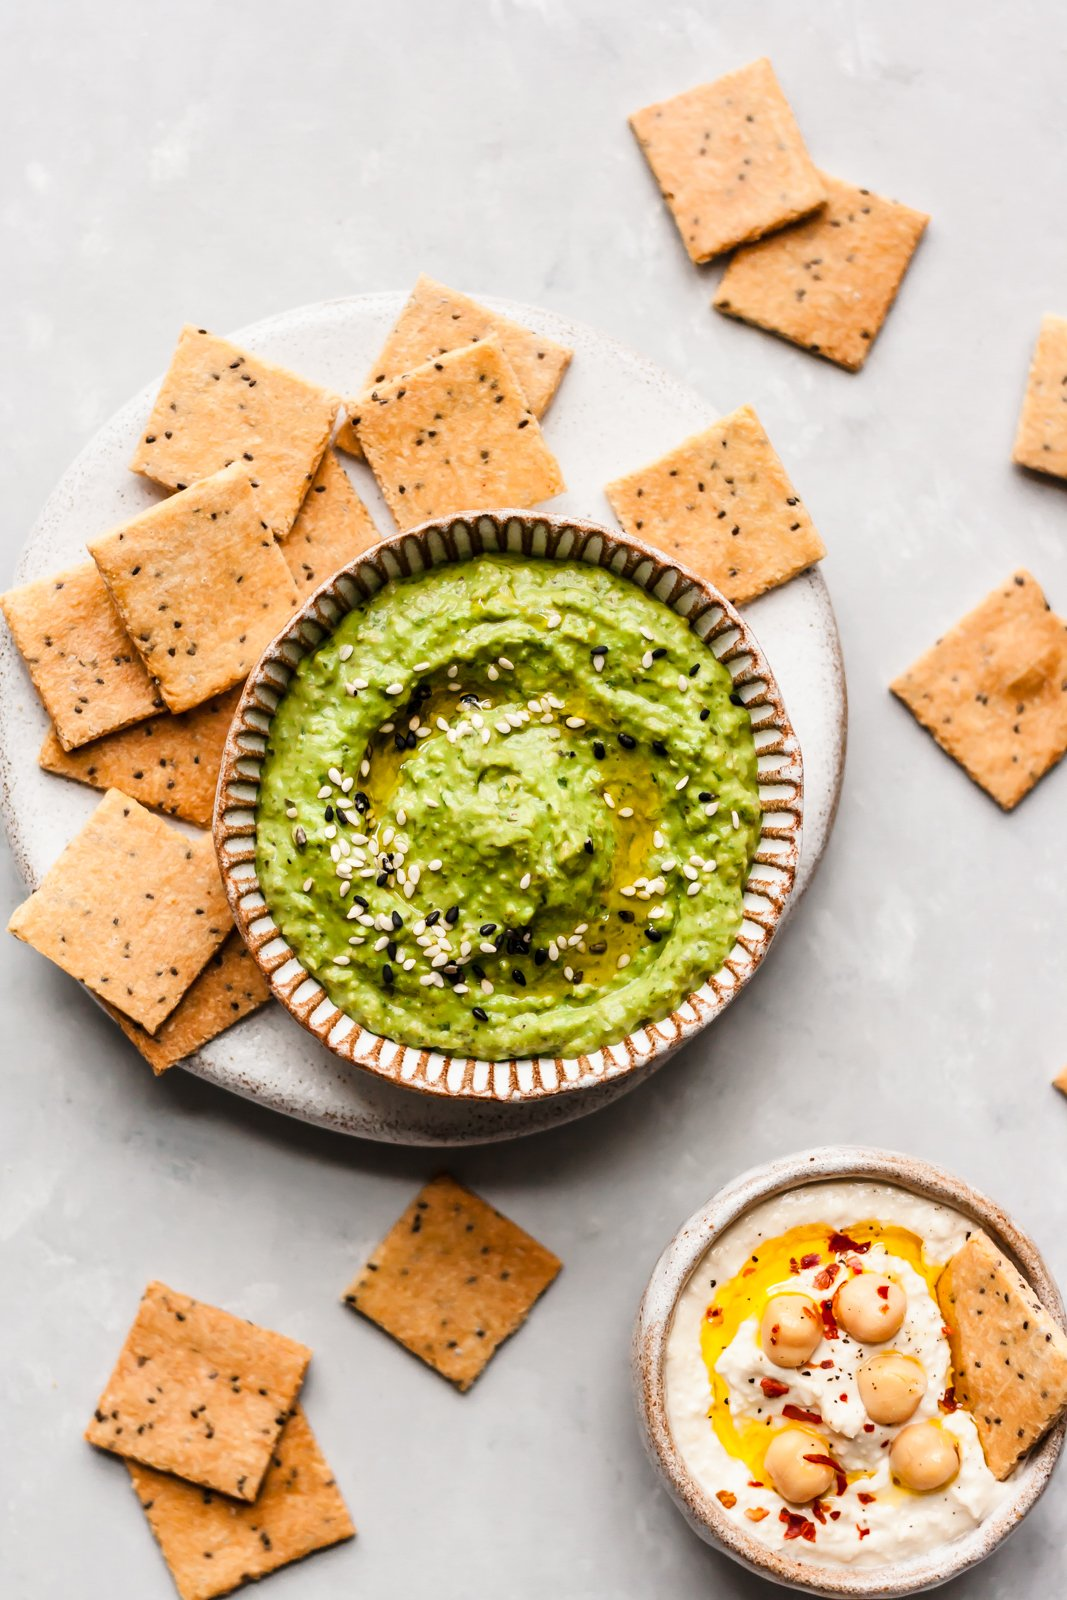 paleo crackers next to two bowls of hummus